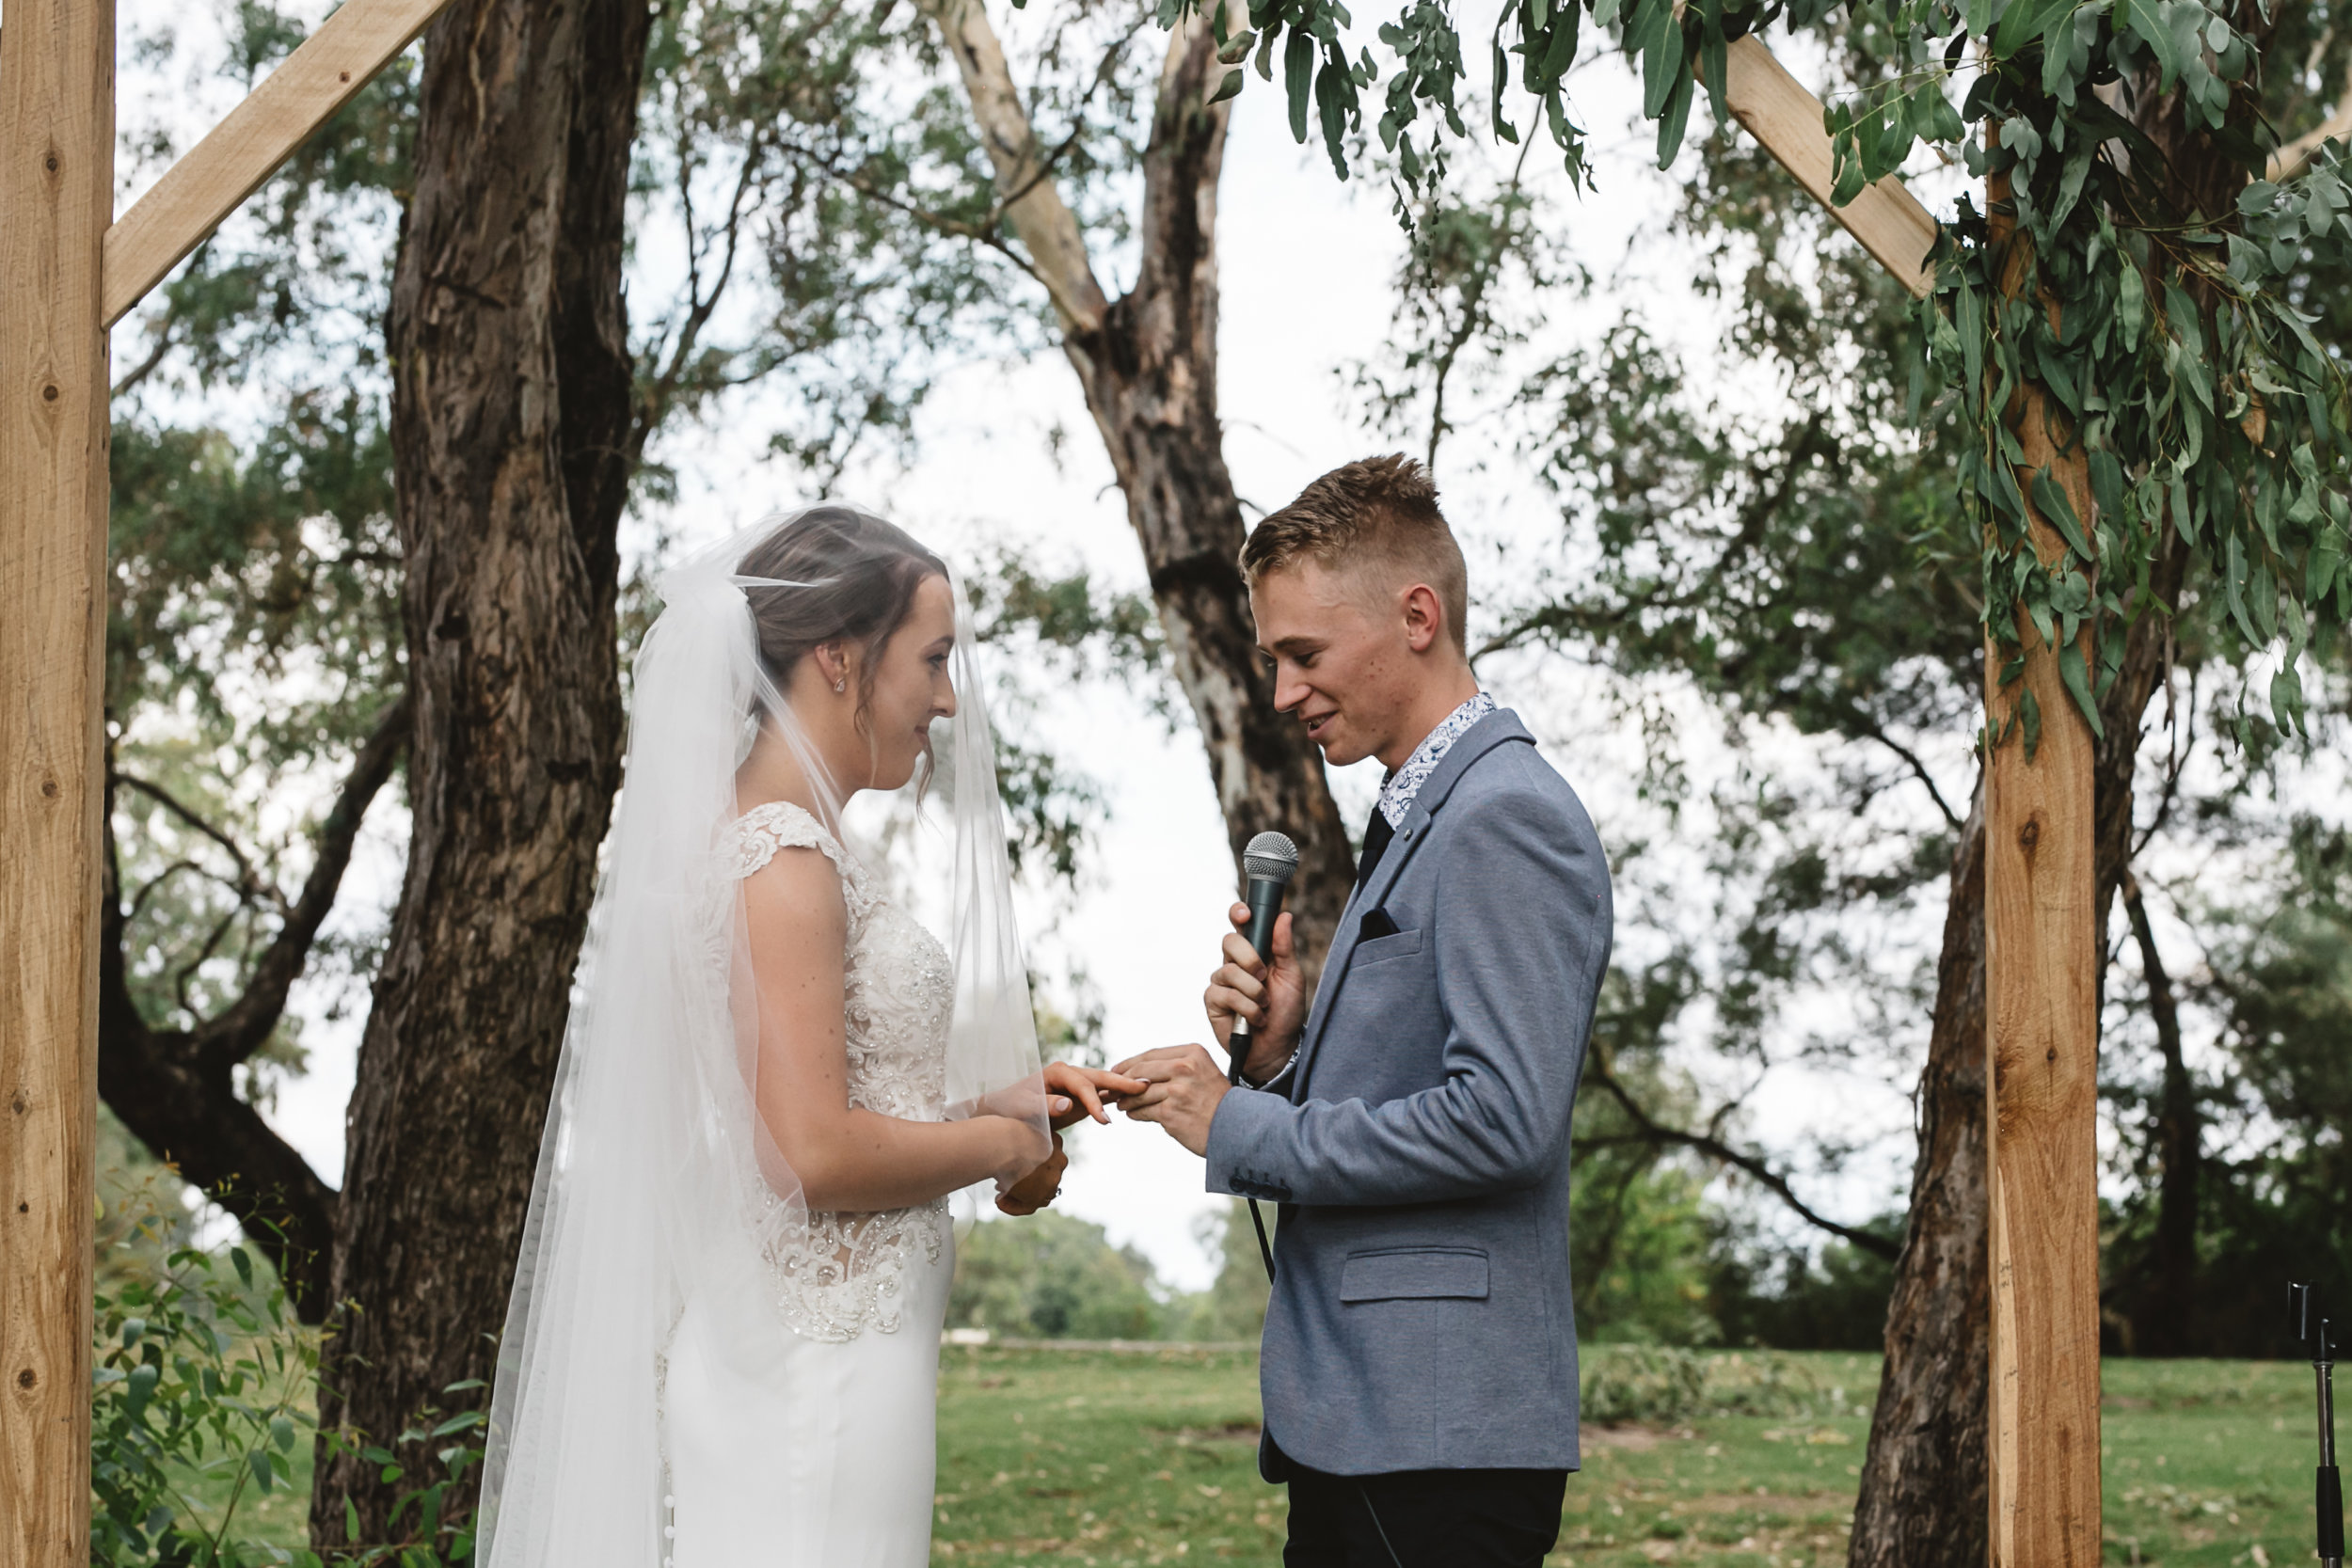 wedding day in portsea and relaxed couples in their wedding day